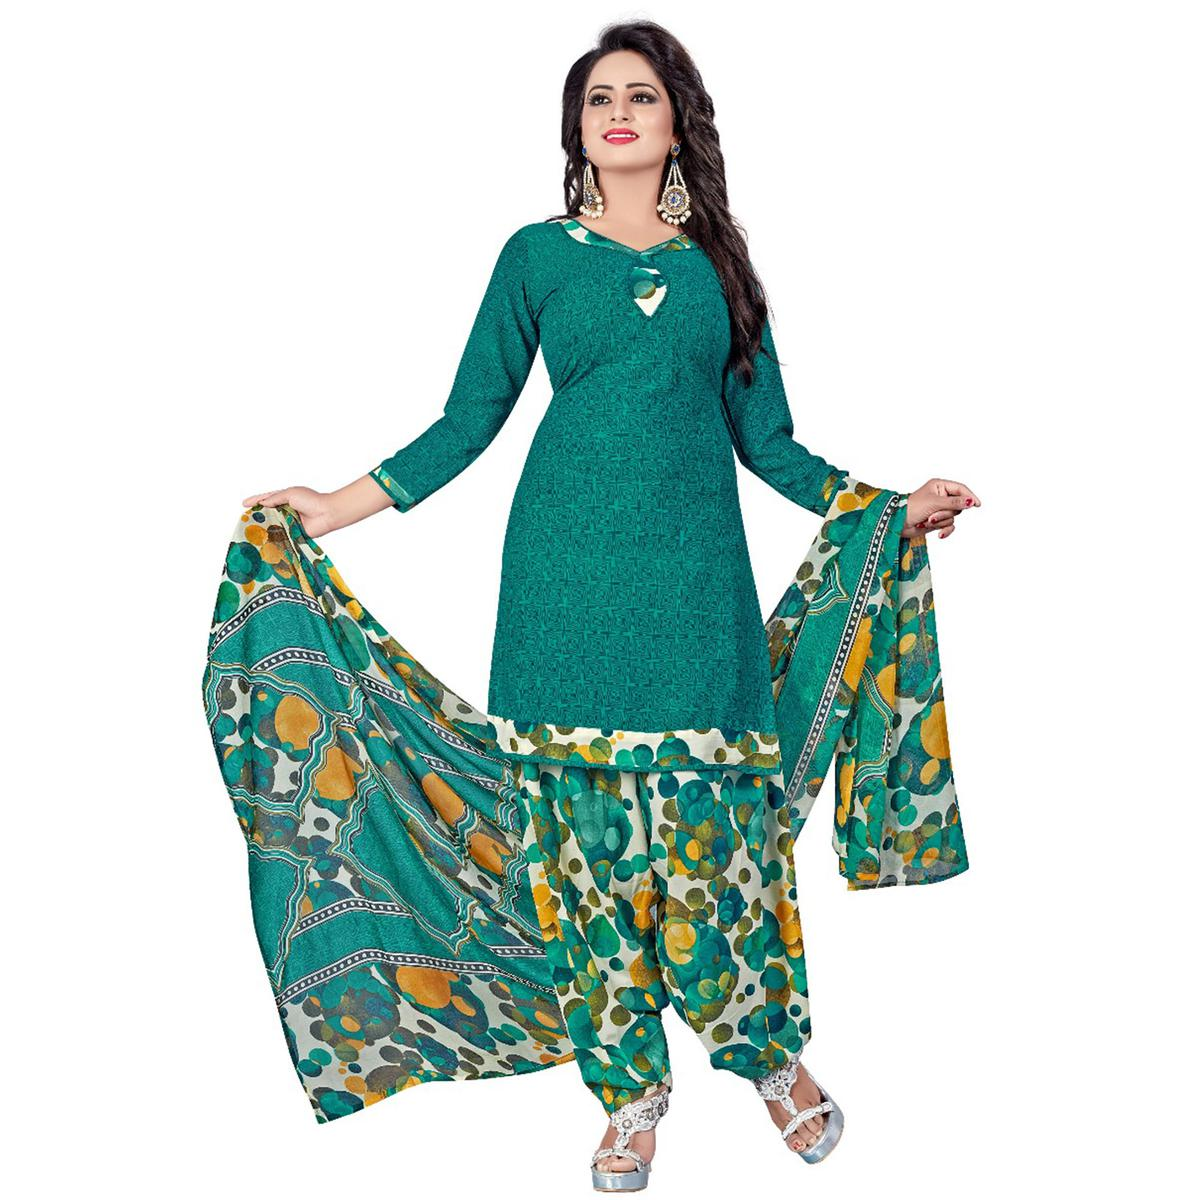 Elegant Turquoise Green Colored Casual Wear Printed Crepe Salwar Suit